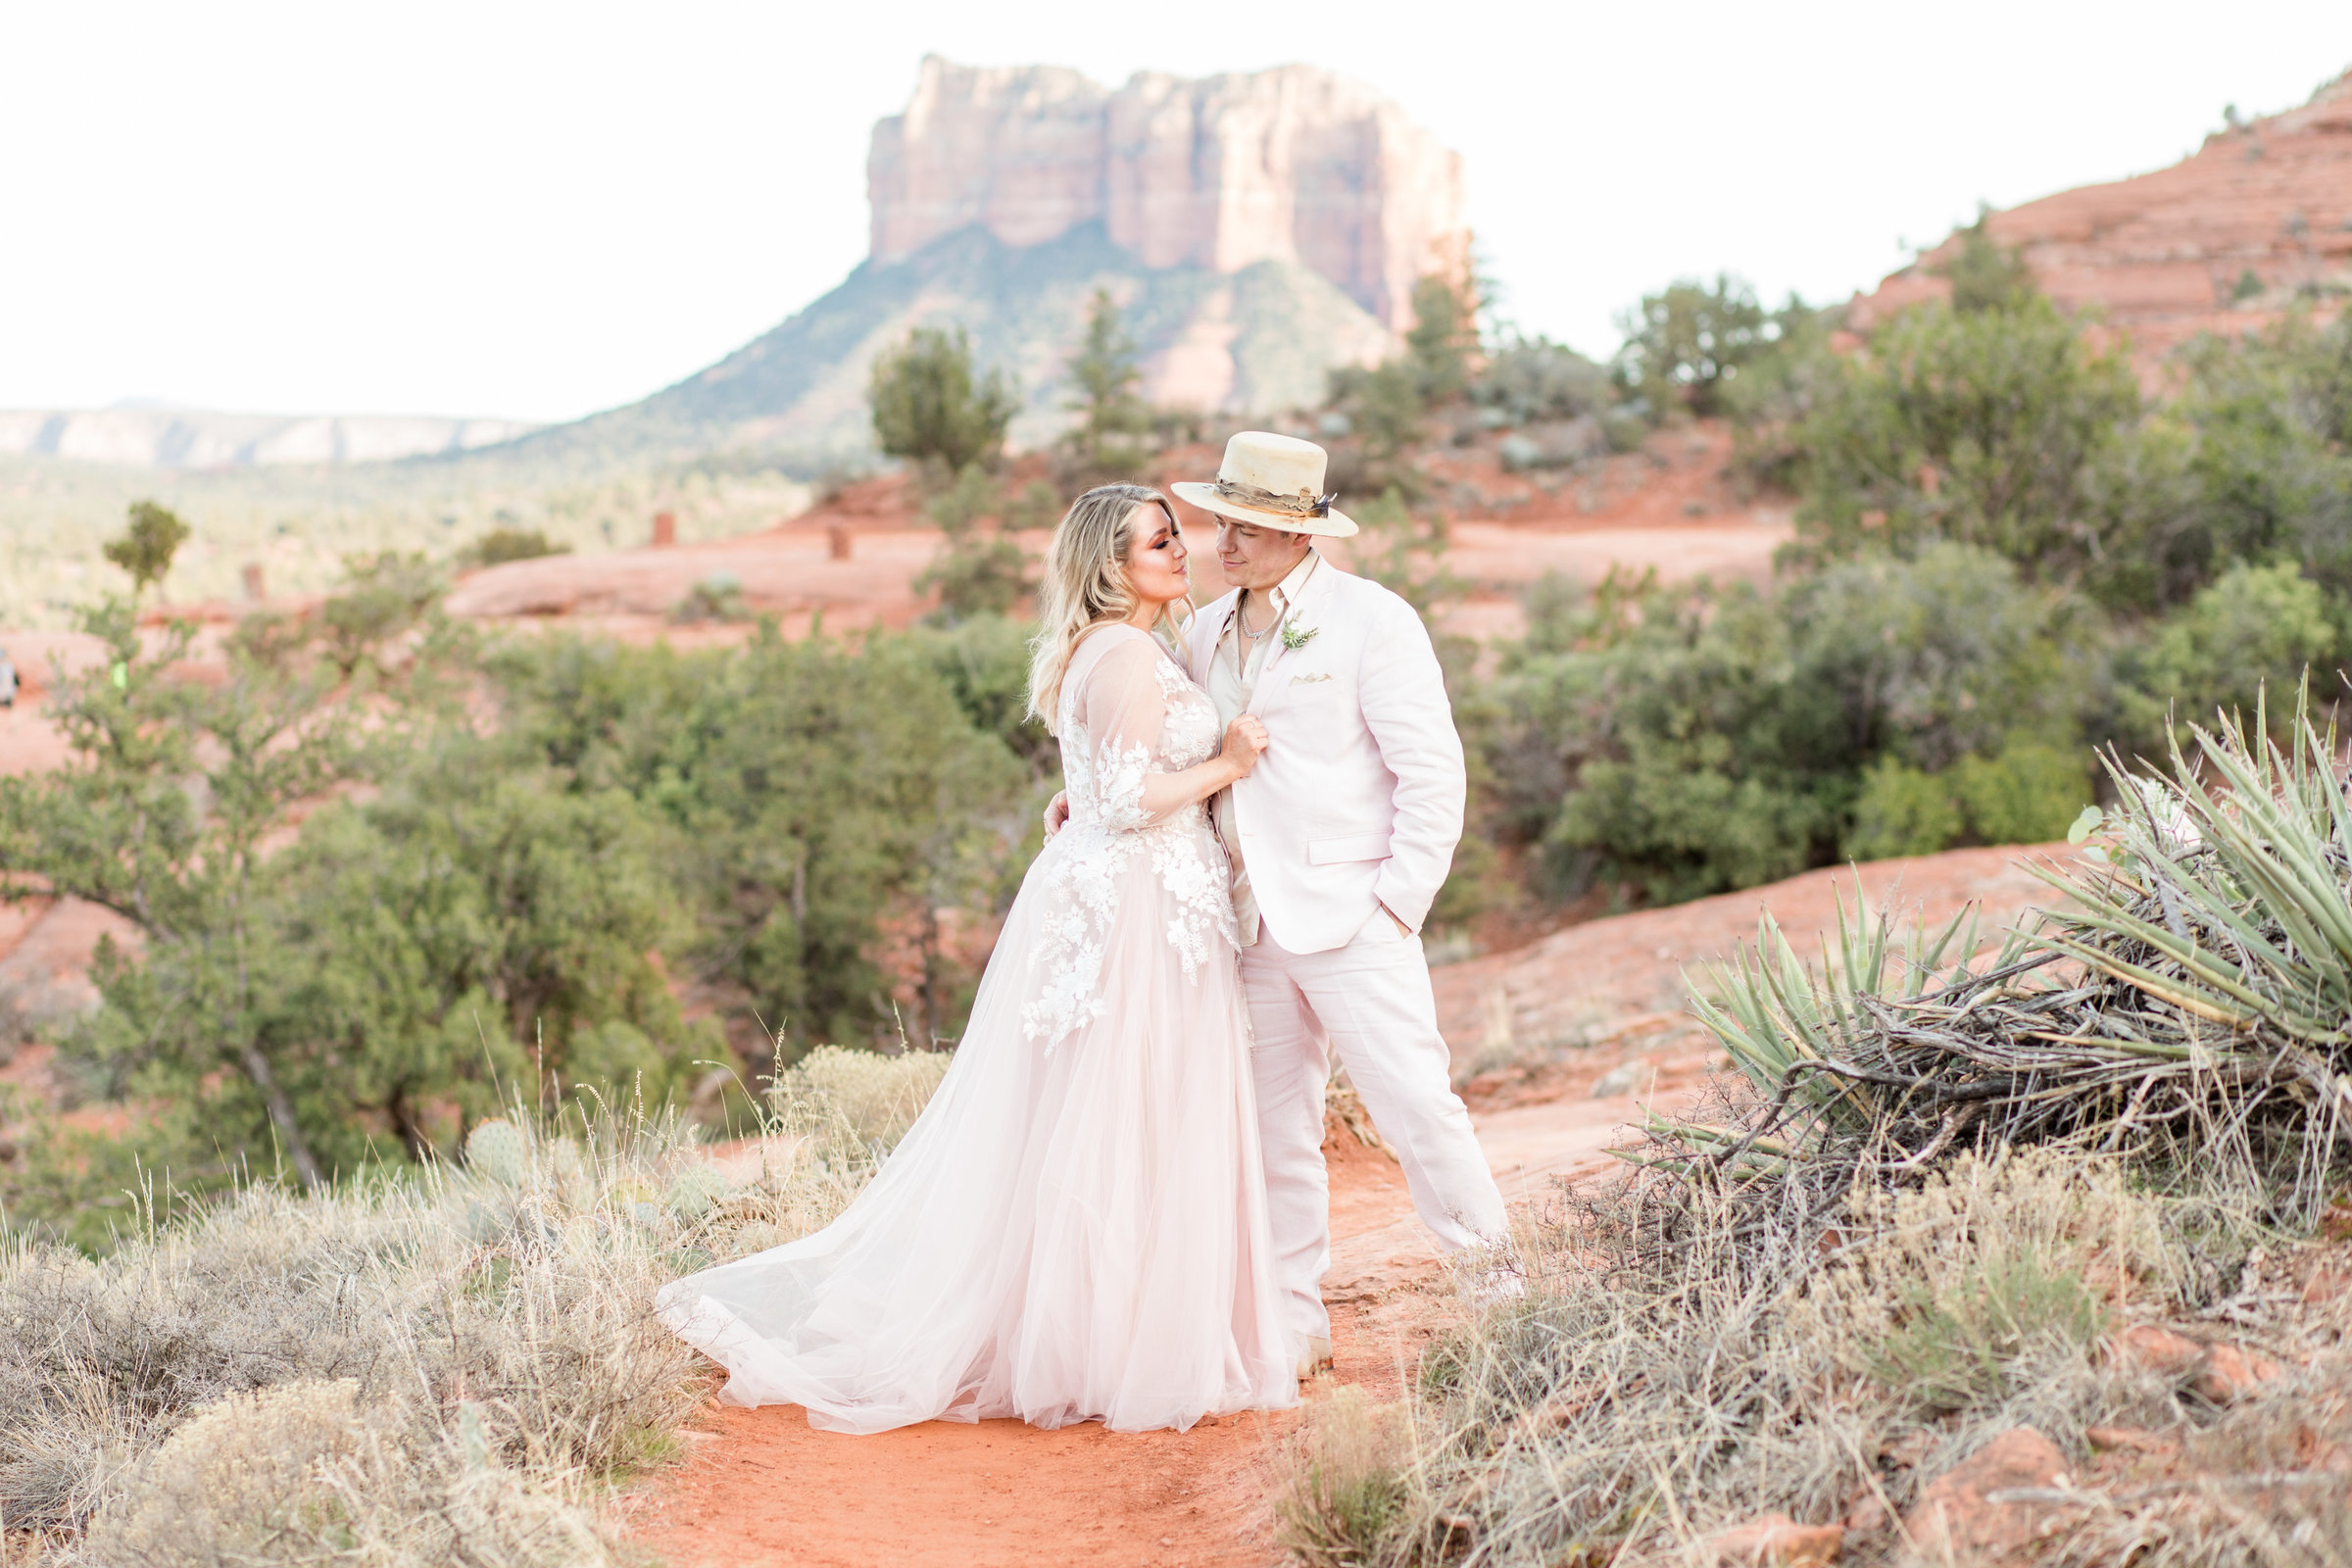 Texas bride and groom elope in Sedona Arizona